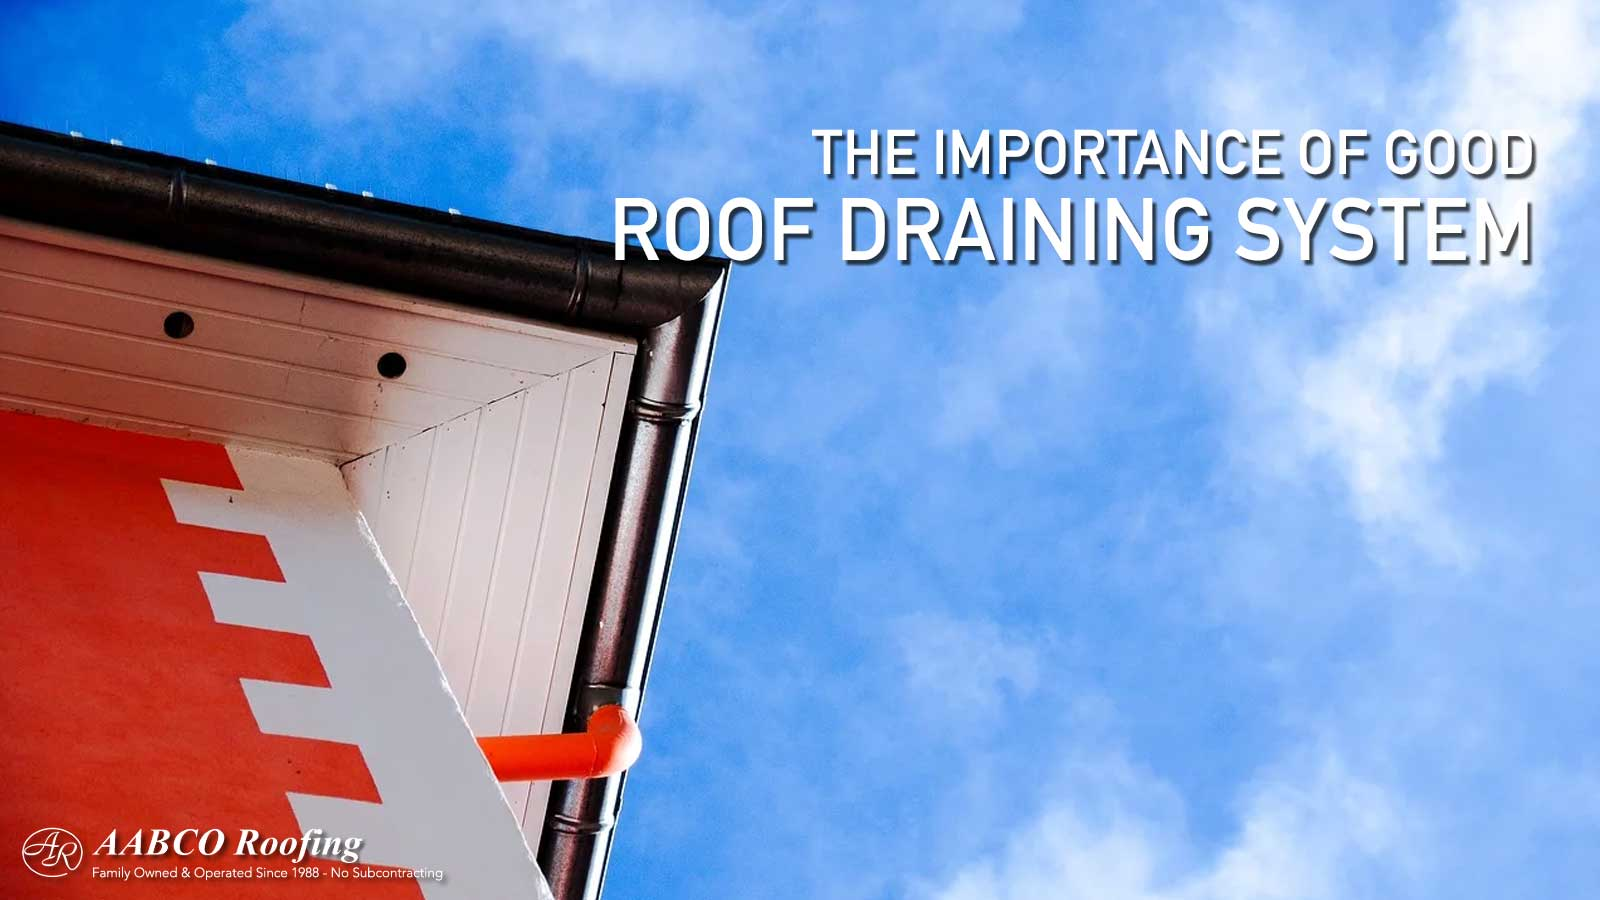 Roof Draining System